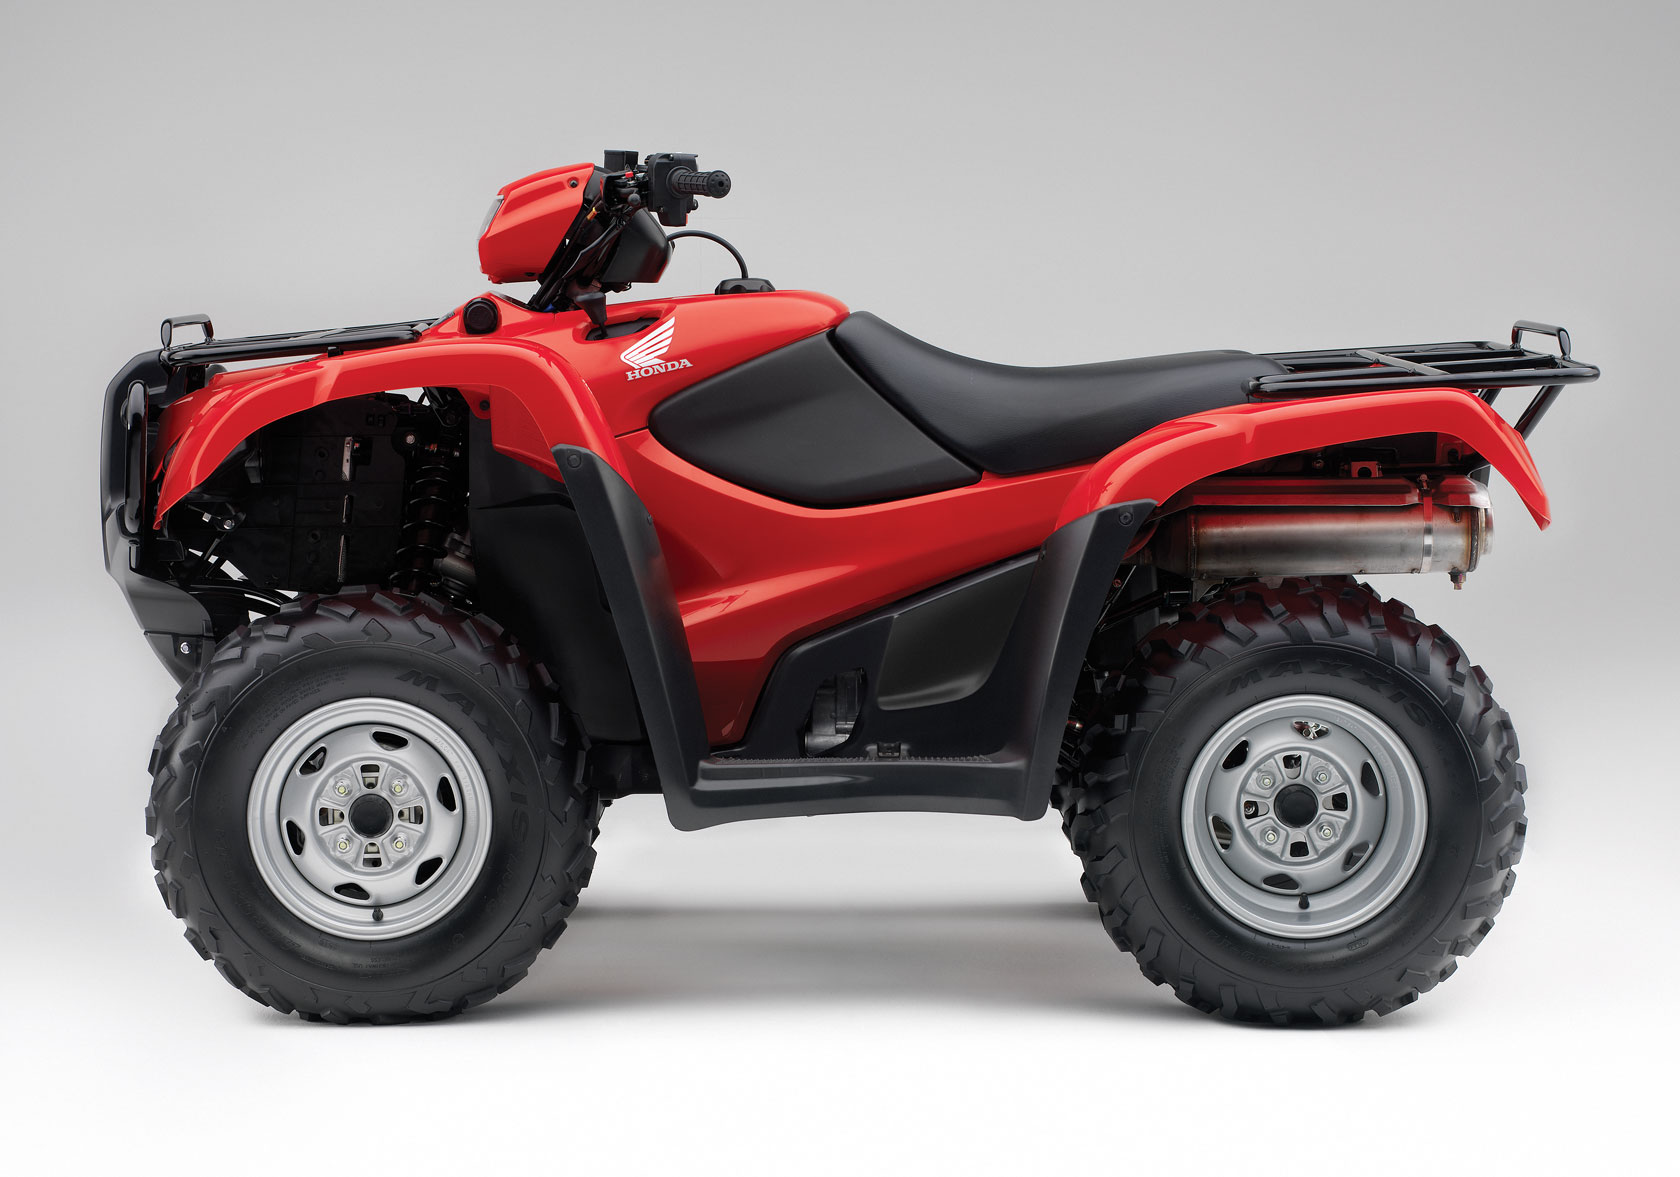 2012 Honda Foreman Atv Wiring Diagram Wiring Diagram View A View A Zaafran It